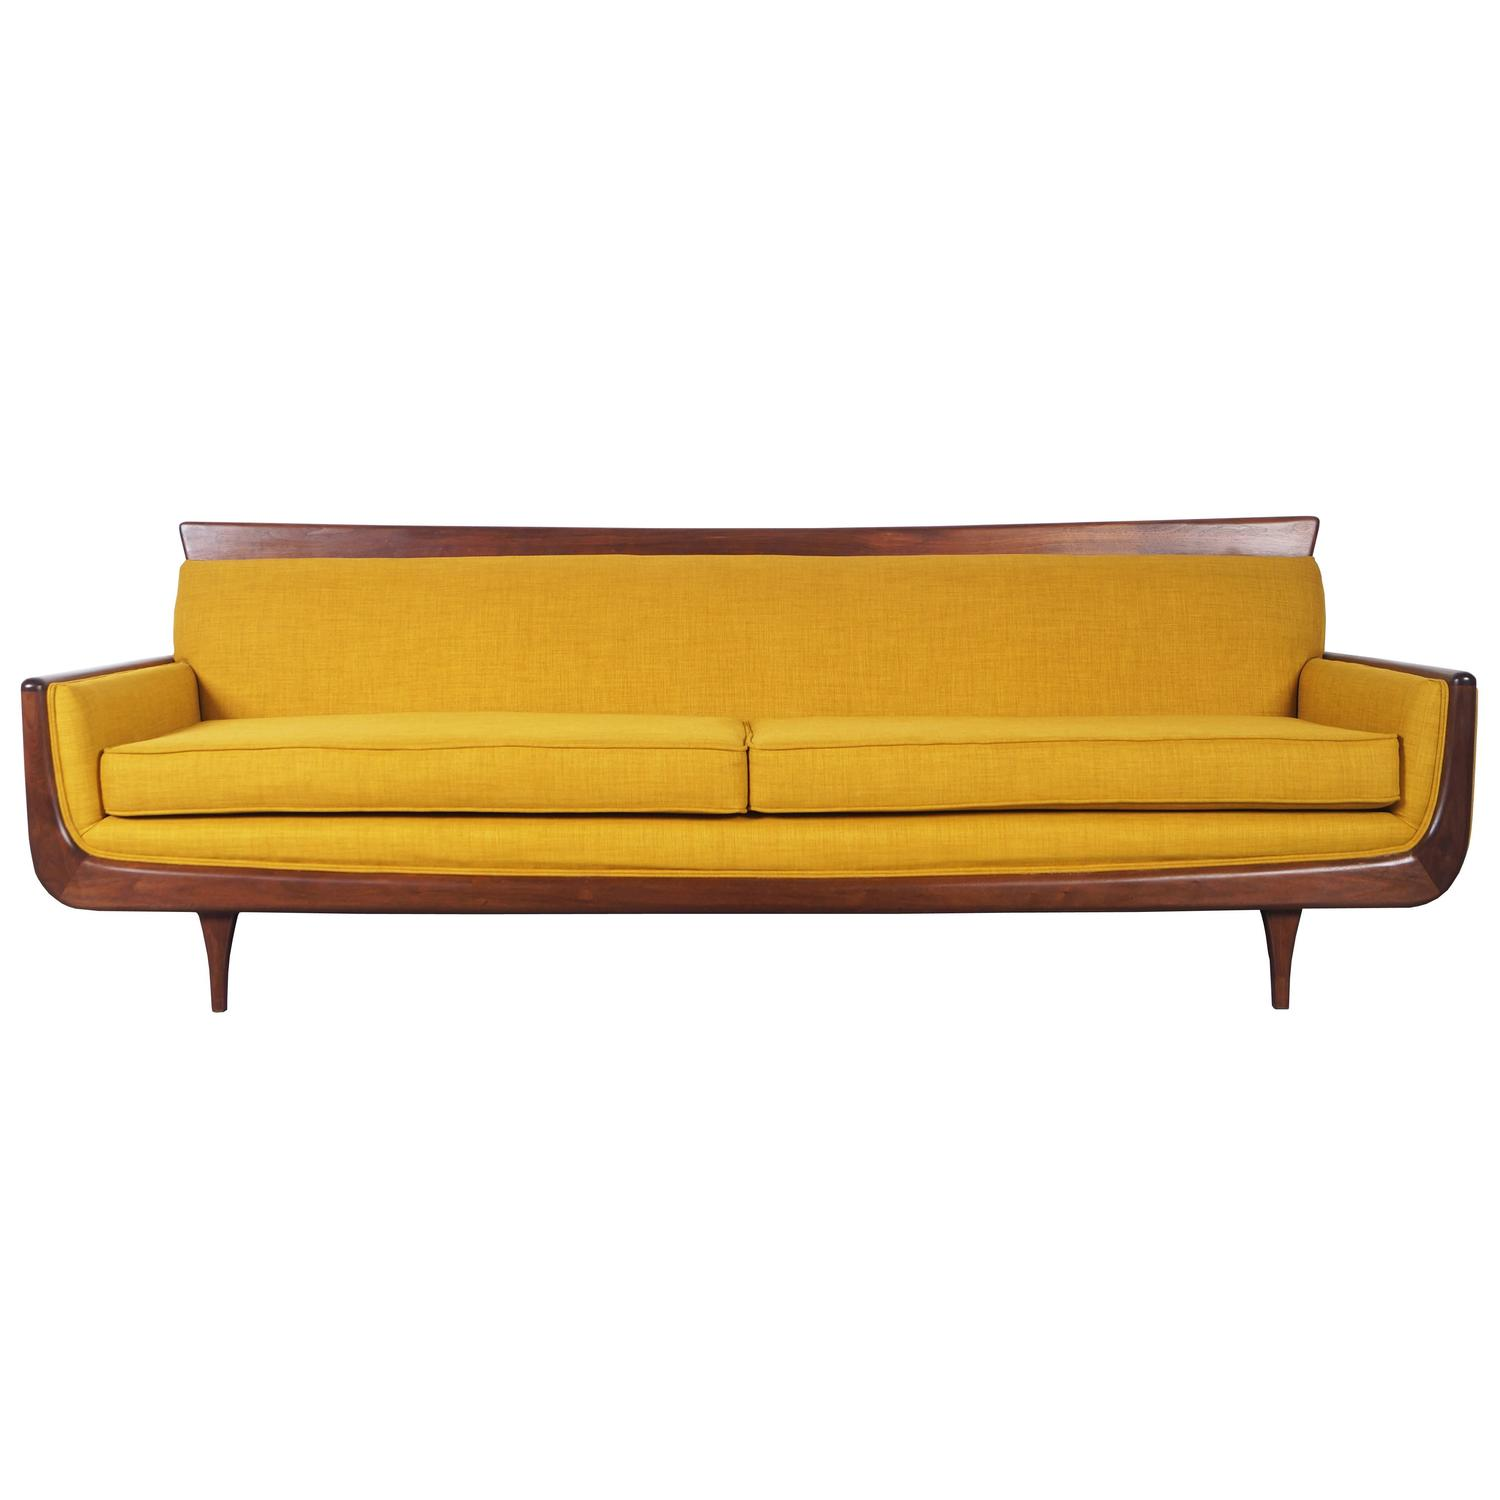 mid century modern walnut sofa at 1stdibs. Black Bedroom Furniture Sets. Home Design Ideas